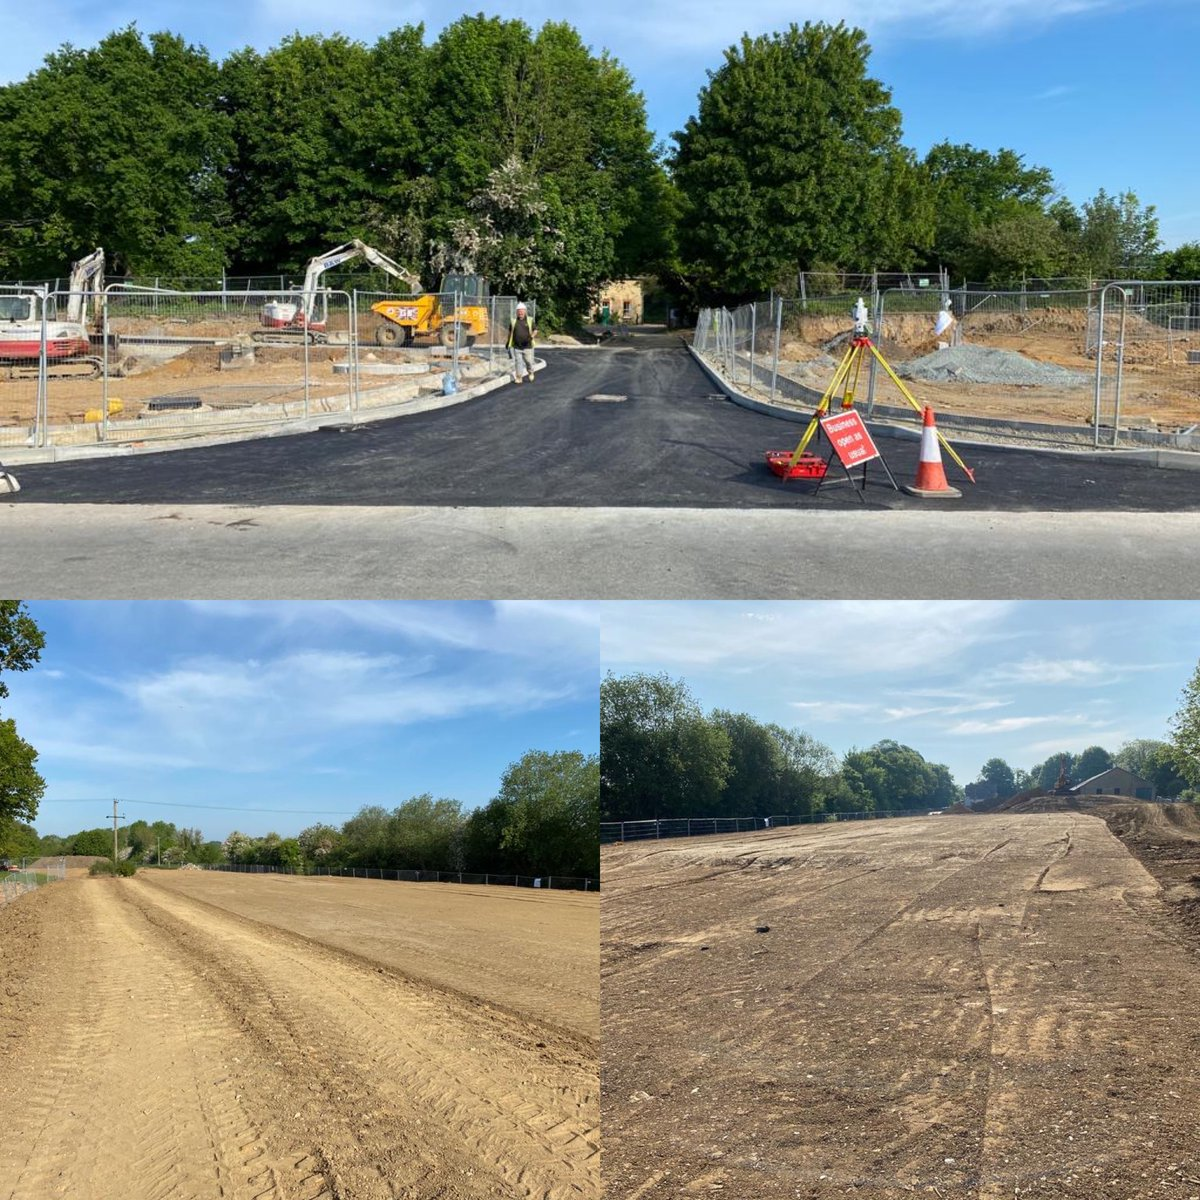 #fridaymotivation  Great work from our CORE team in Reepham near Norwich - the good weather is certainly helping us to make fantastic progress on site!  #CORE #infrastructure #civilengineering #SunnyDayspic.twitter.com/cq2cX8YjN1